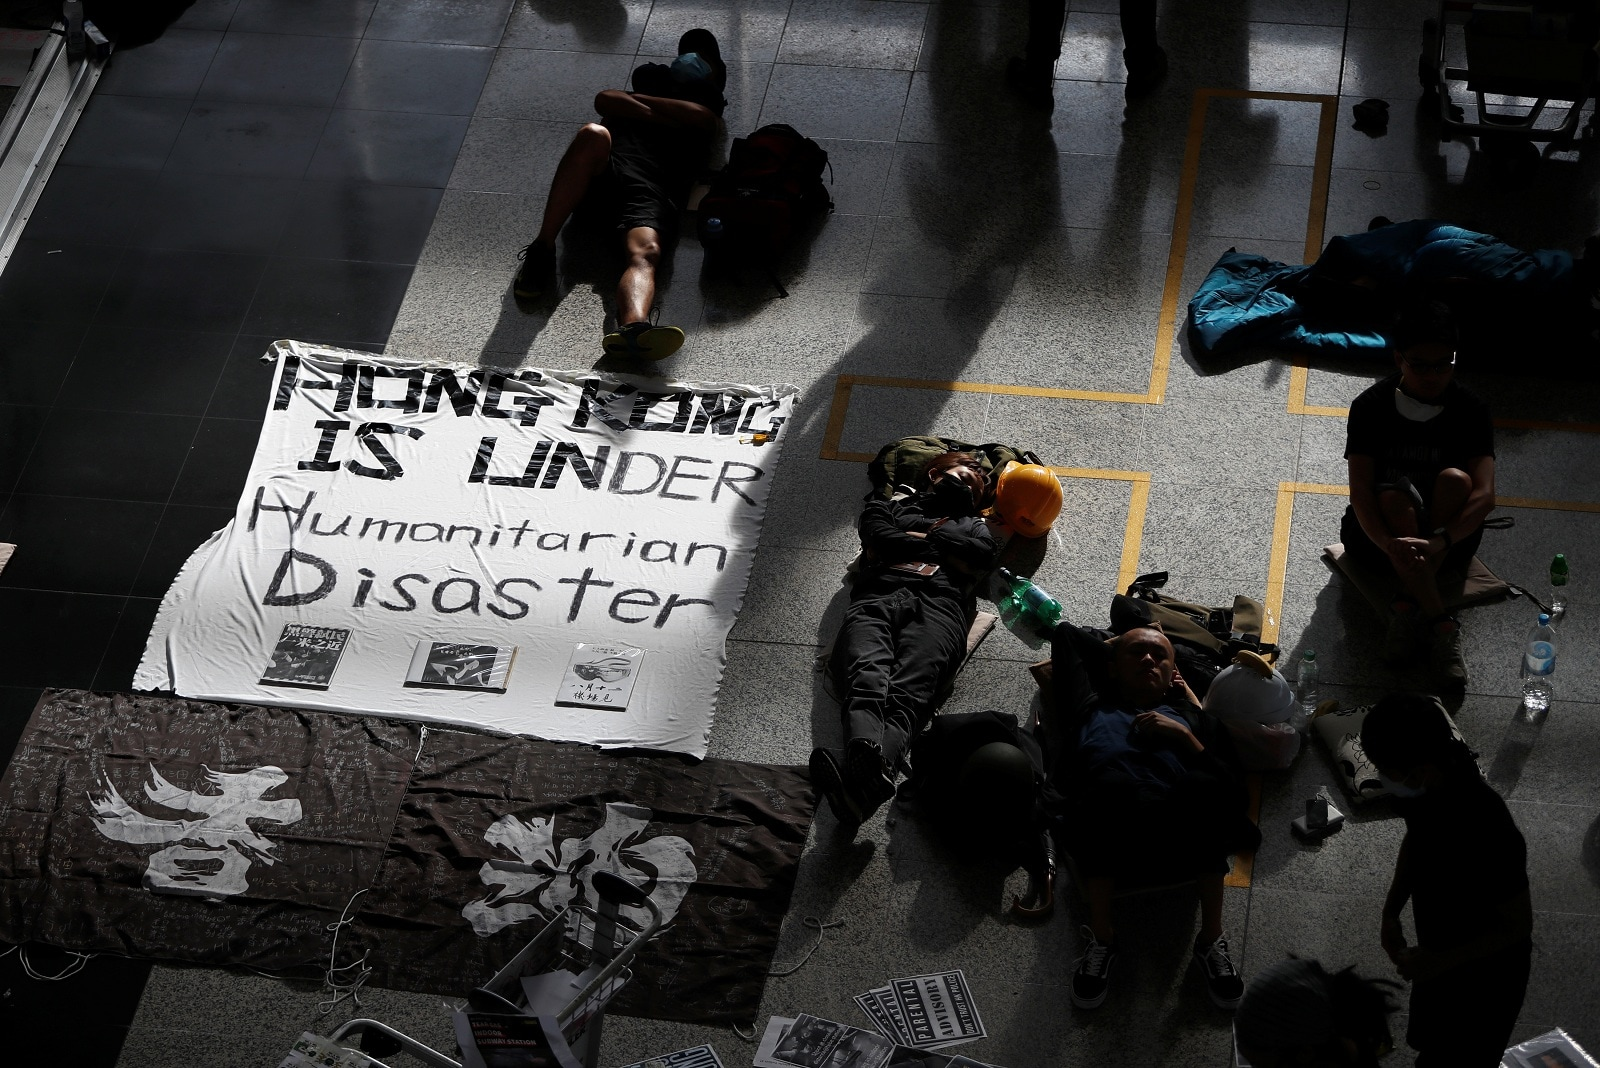 Some anti-extradition bill protesters rest on the floor a day after the airport was closed due to a protest, at Hong Kong International Airport, China August 13, 2019. REUTERS/Issei Kato